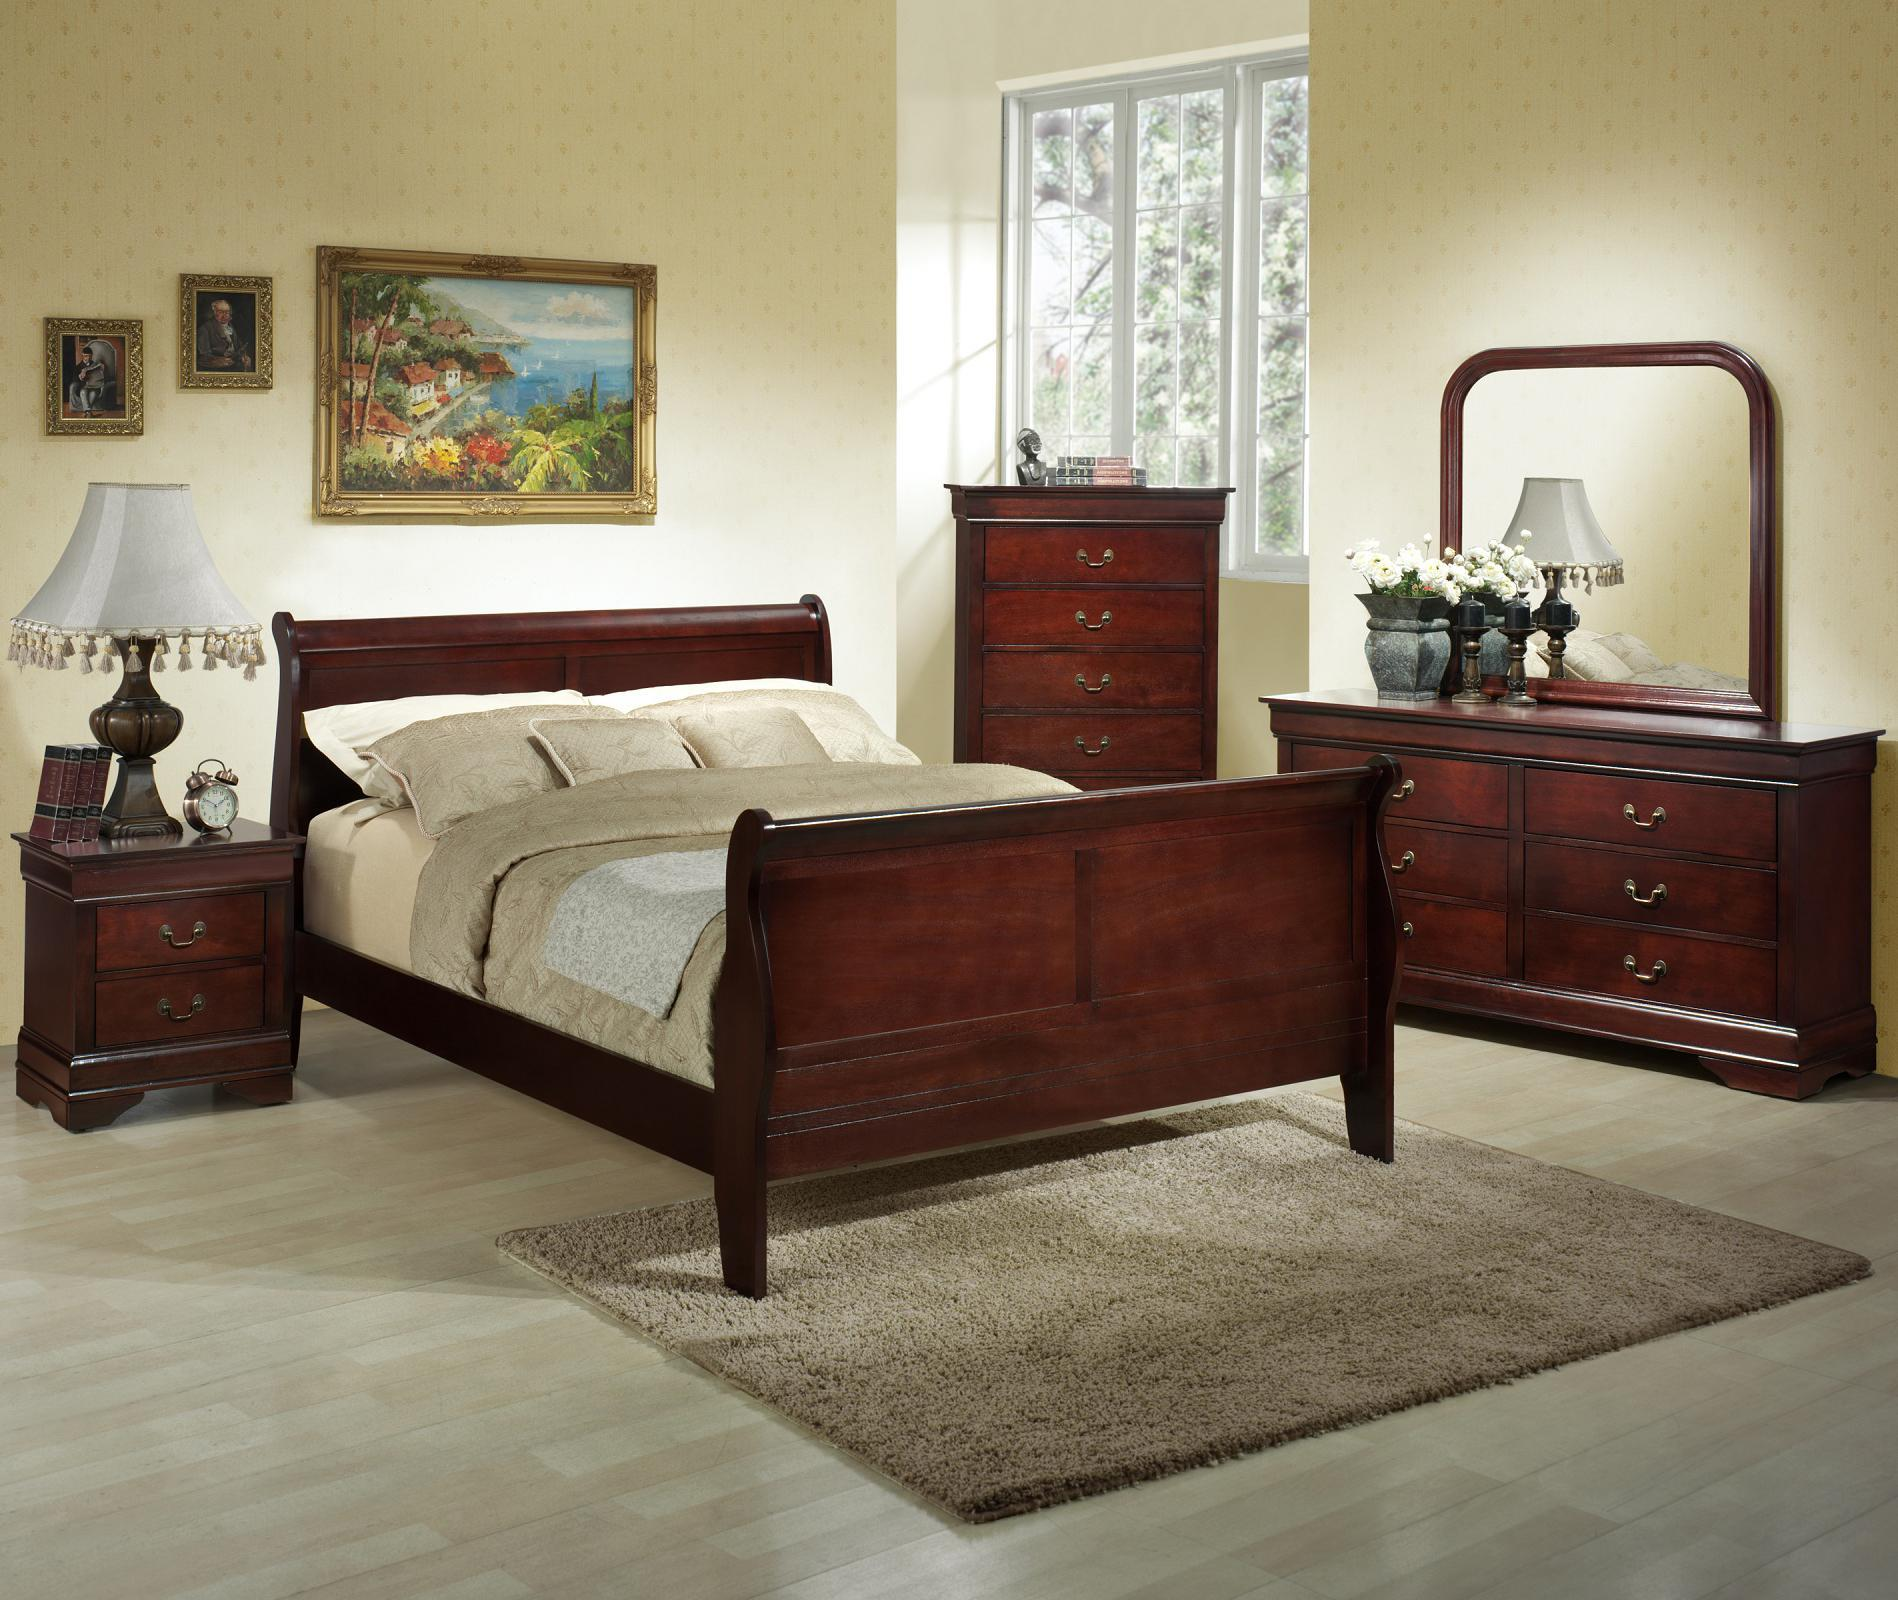 Lifestyle Louis Phillipe Queen 6-Piece Bedroom Group - Item Number: 5933A Q Bedroom Group 2